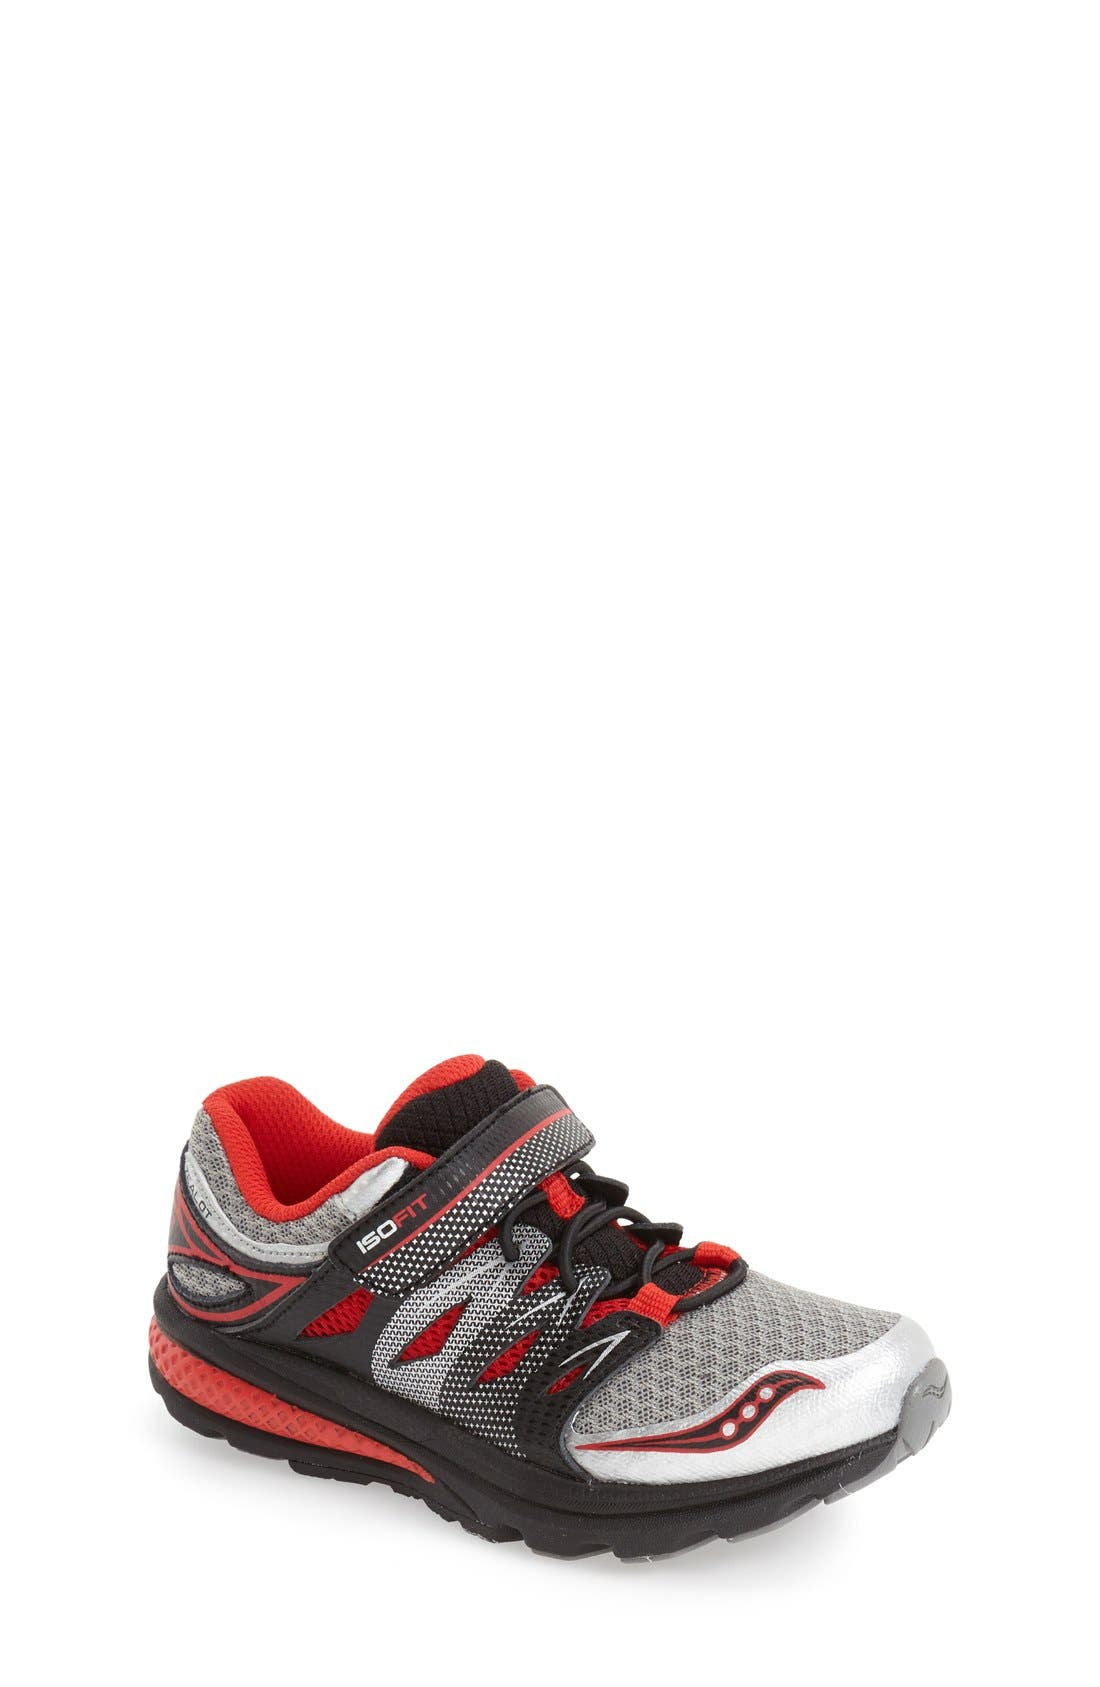 'Zealot 2 AC' Running Shoe,                             Main thumbnail 1, color,                             Grey/ Red